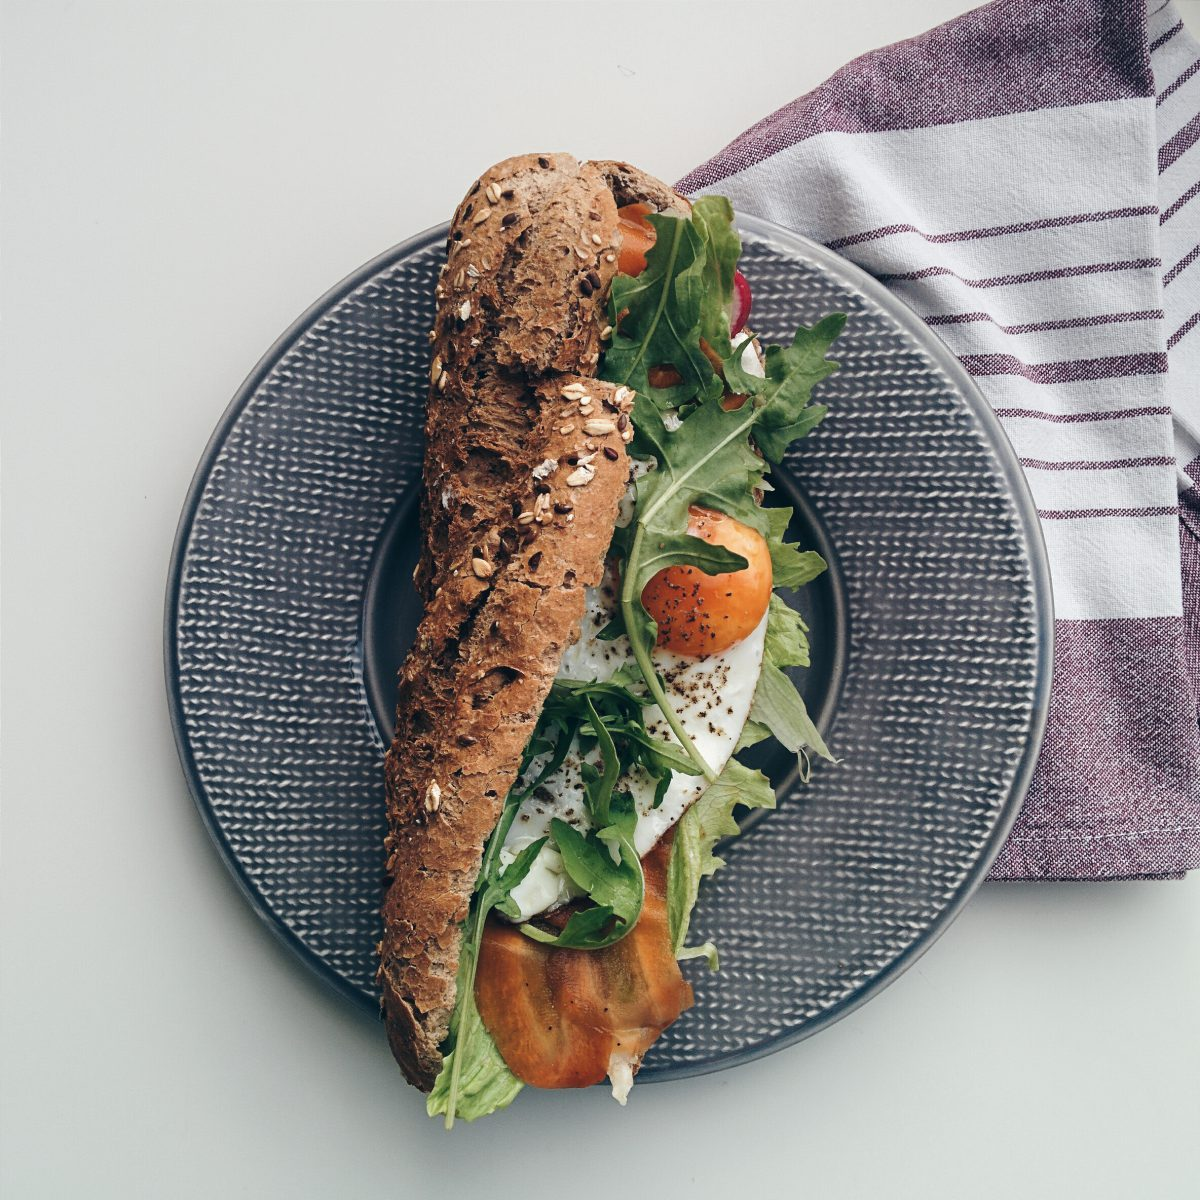 Healthy homemade baguette